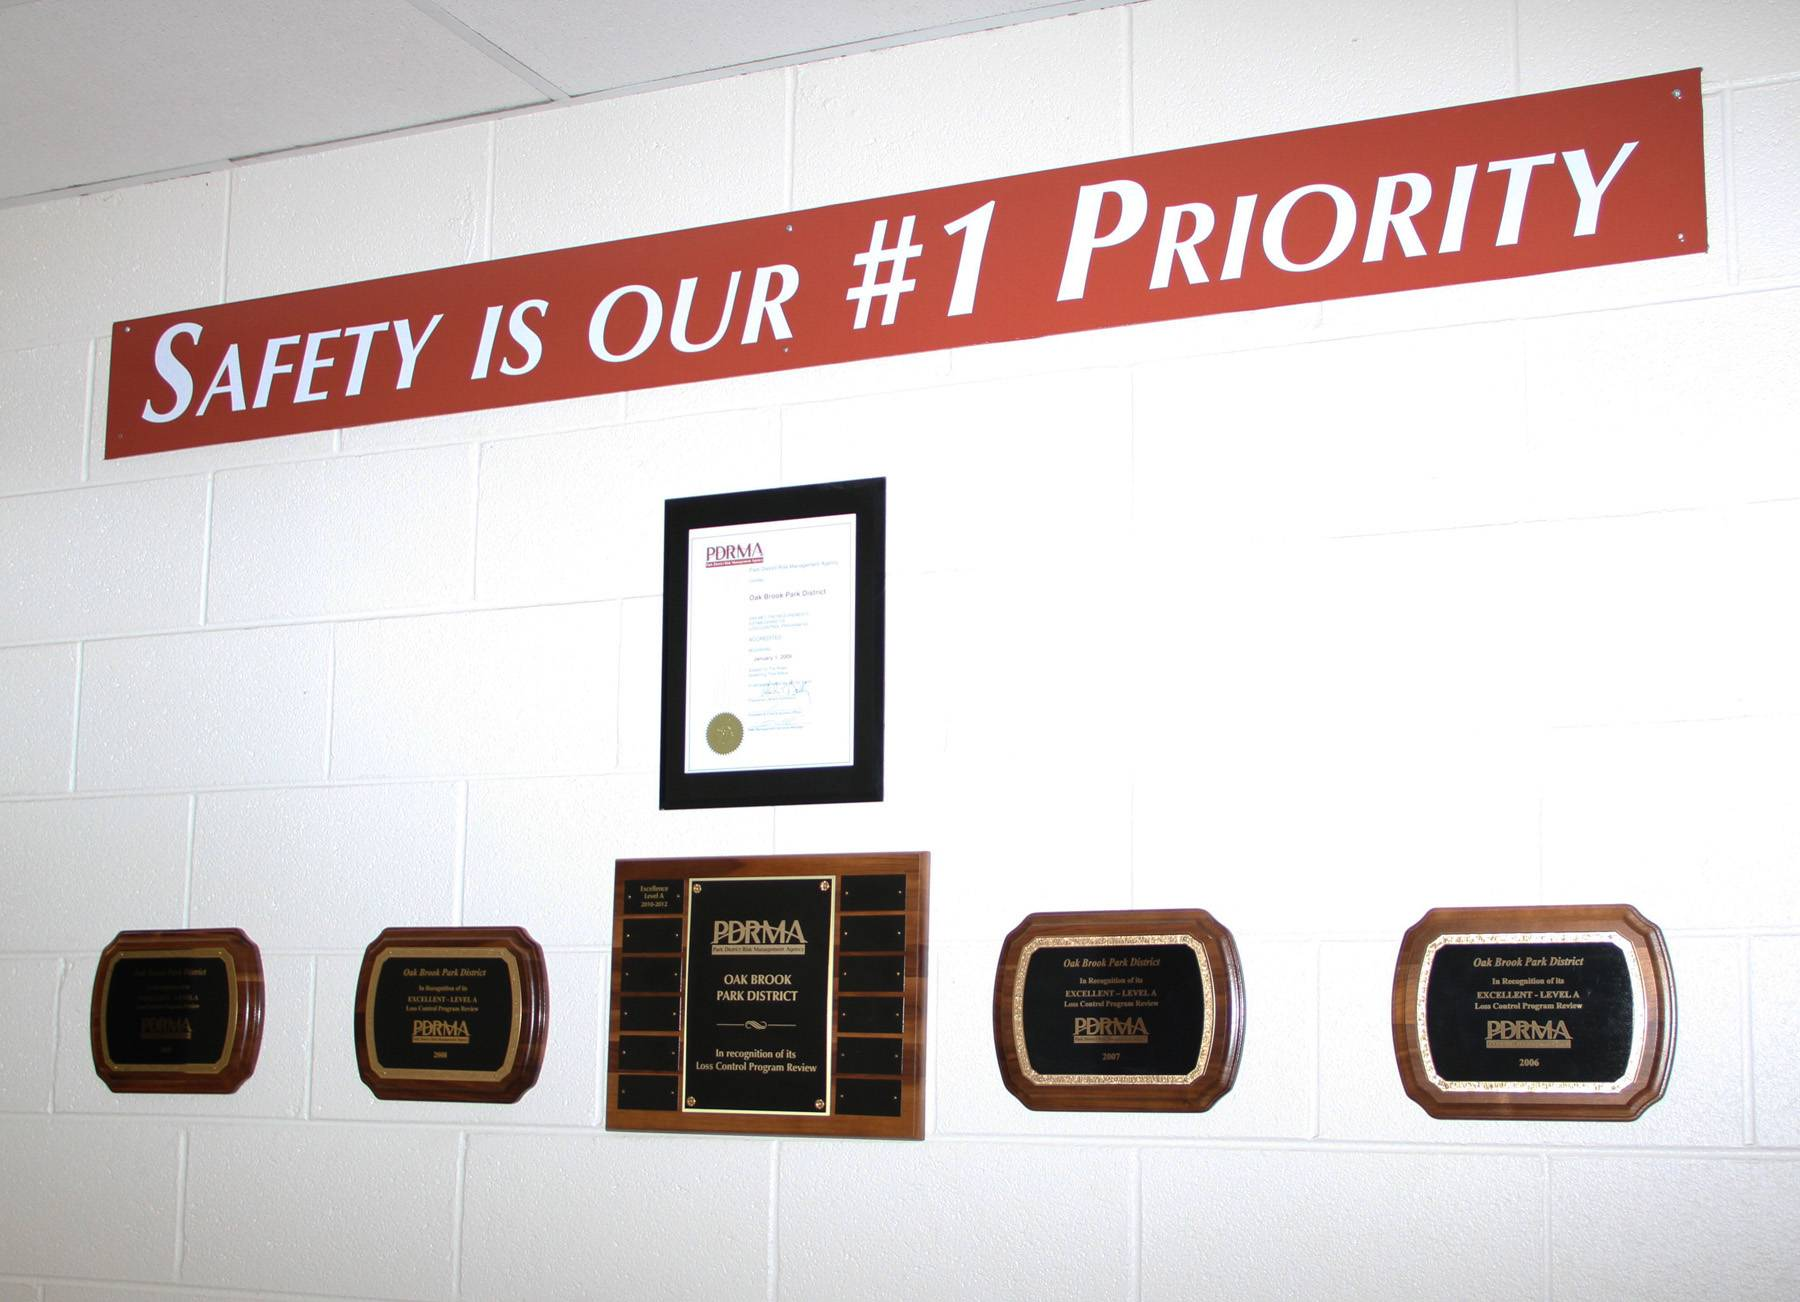 The Oak Brook Park District has maintained PDRMA's highest accreditation status for safety since 2006.